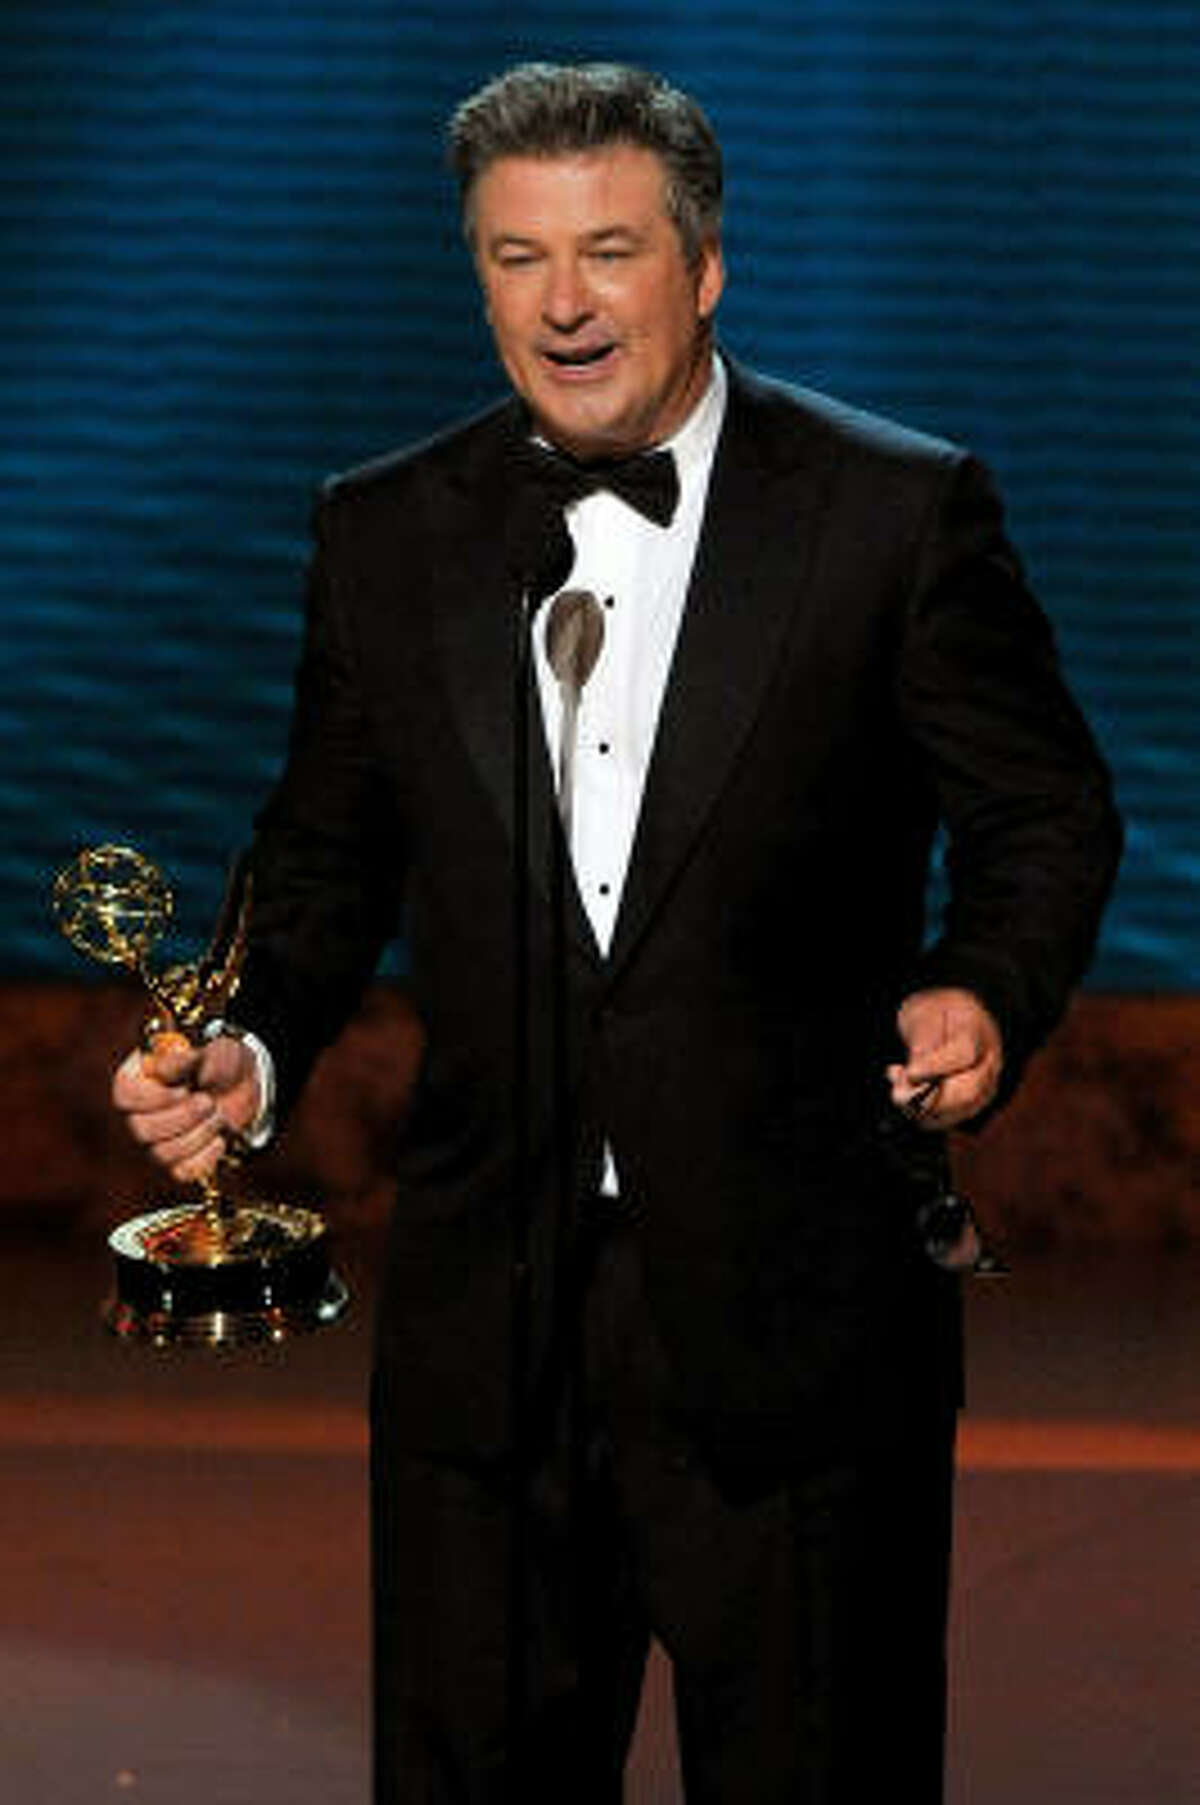 61st Primetime Emmy Awards: Sept. 13. Size: 4.75 pounds and 16 inches. Resembles: Hood ornament. Weapon potential: Medium. The pointy wings could poke out an eye.